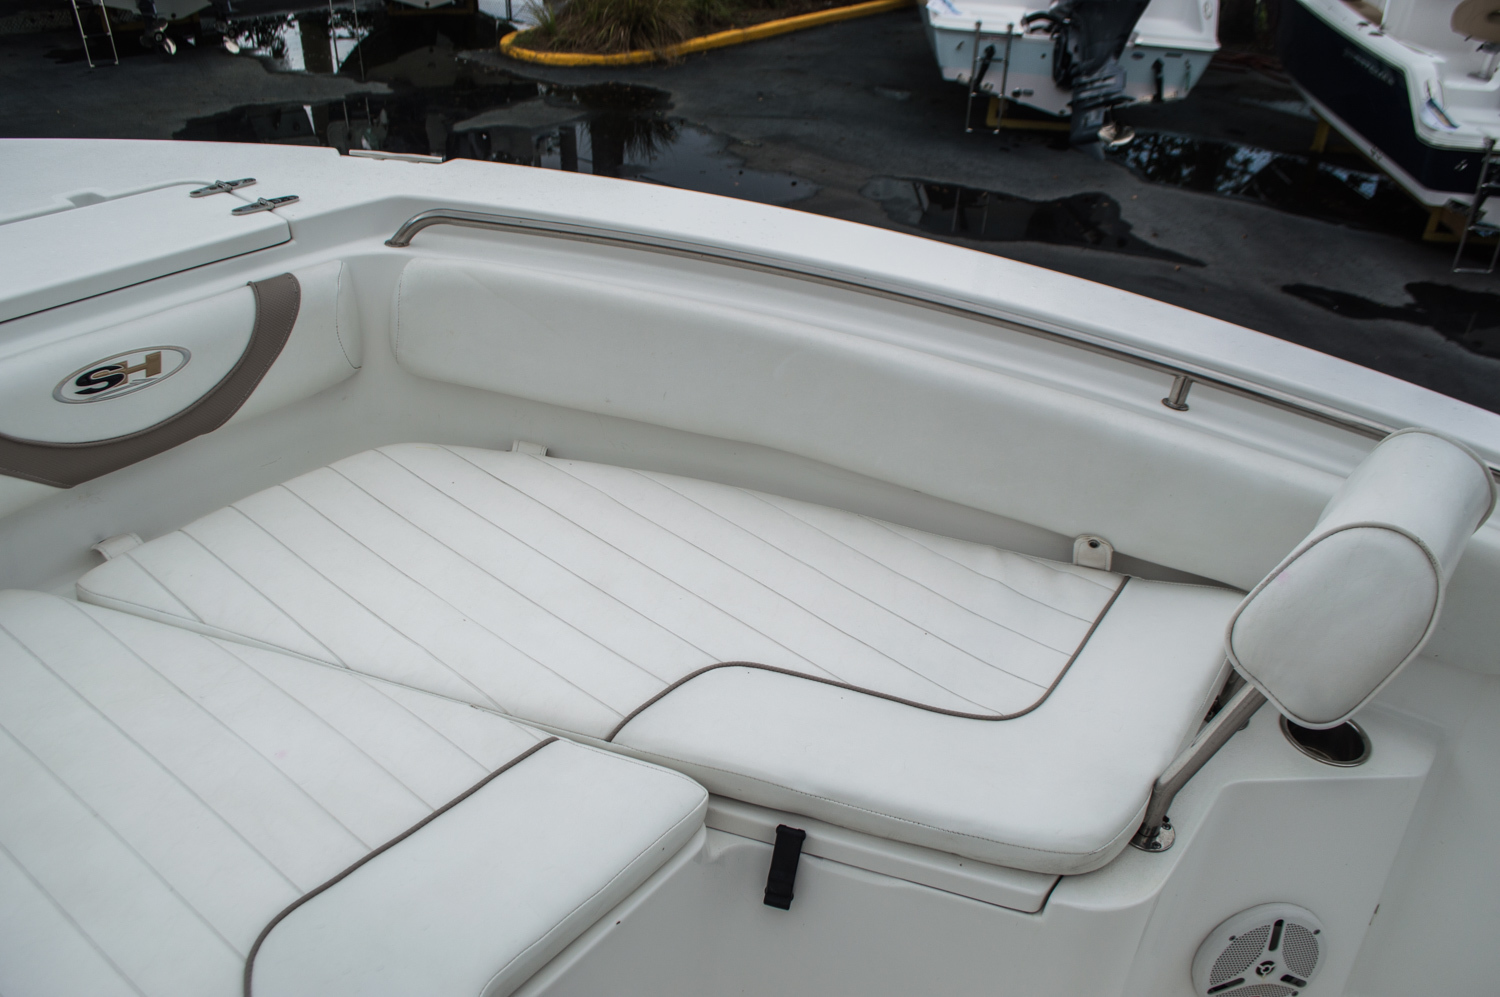 Thumbnail 13 for Used 2012 Sea Hunt 211 Ultra boat for sale in West Palm Beach, FL